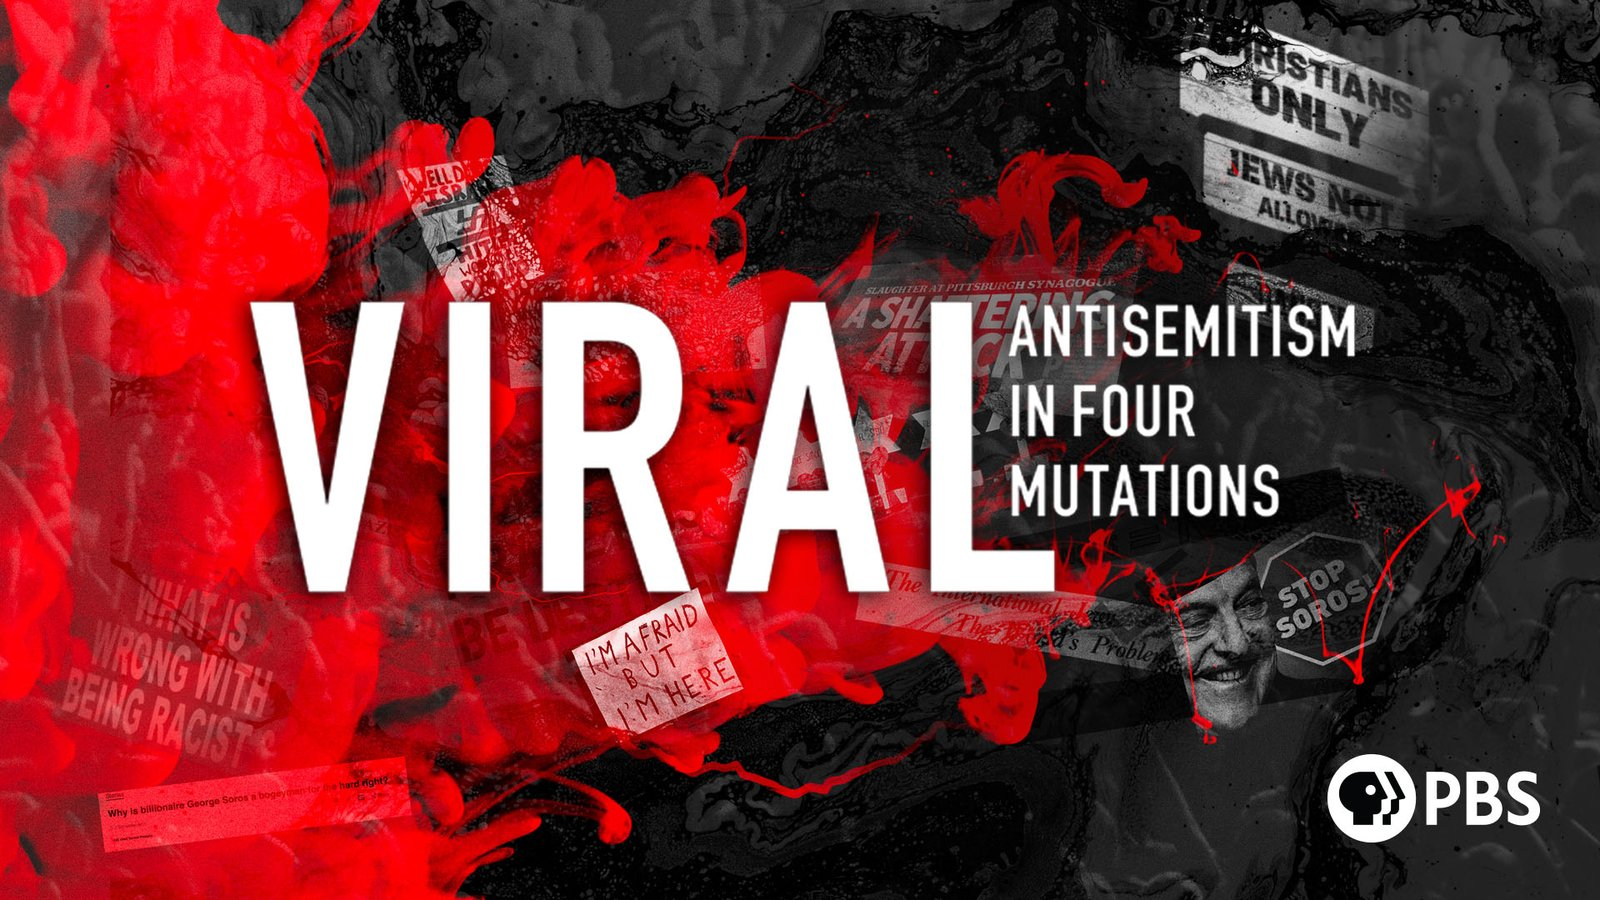 Viral: Antisemitism in Four Mutations